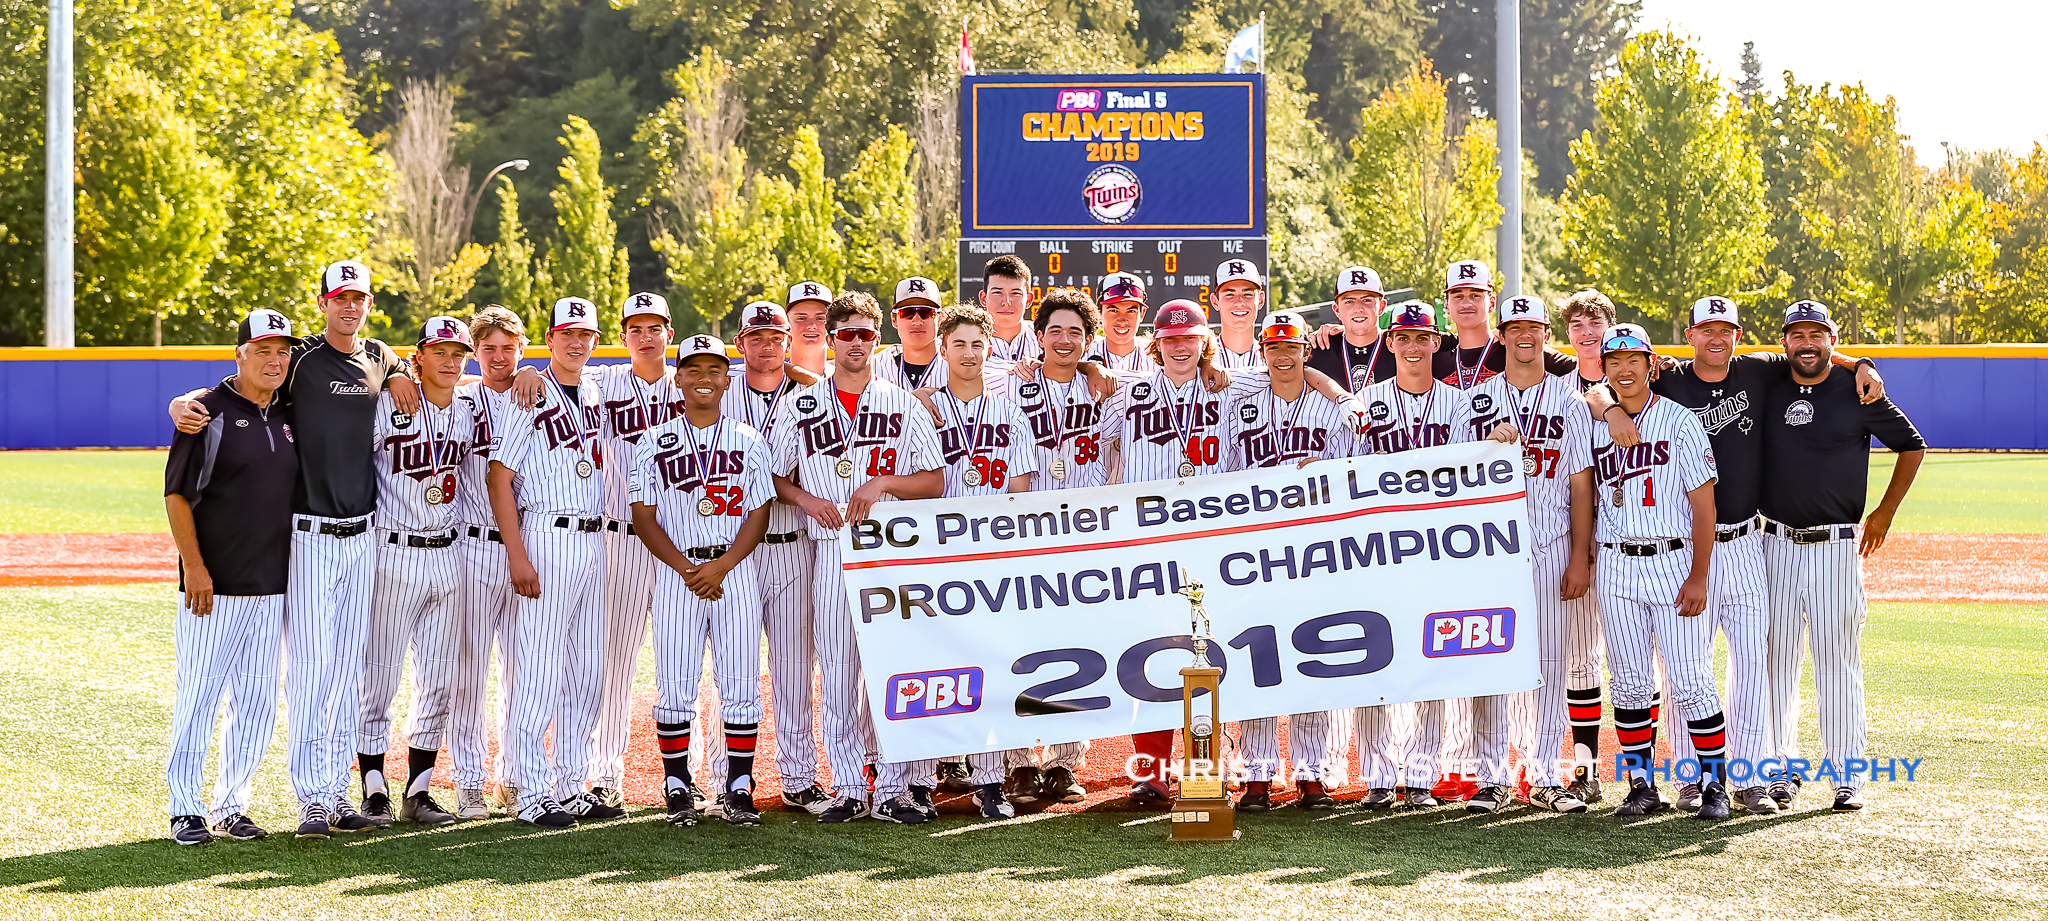 The 2019 BCPBL Champion North Shore Twins. Photo: Christian J. Stewart.